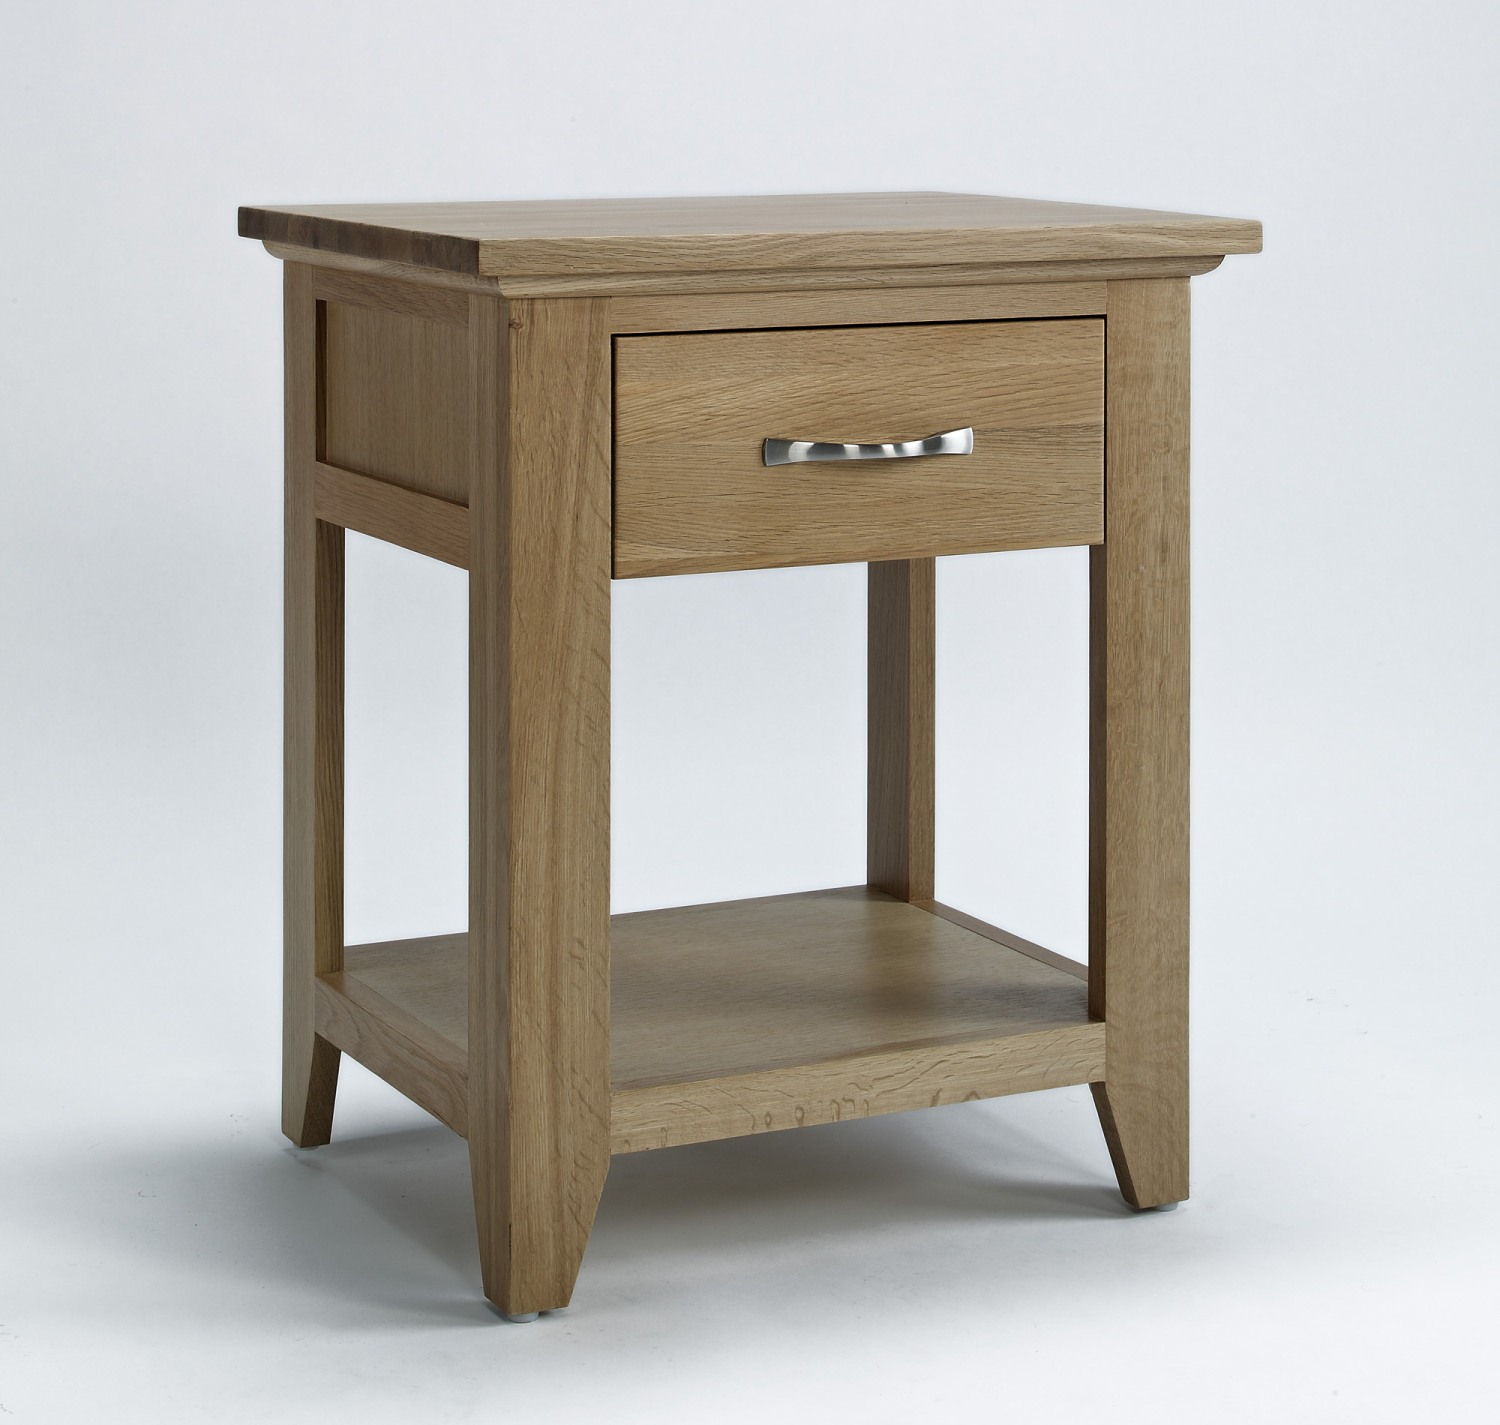 Wonderful image of Compton solid oak furniture storage lamp table eBay with #5F4F3B color and 1500x1425 pixels